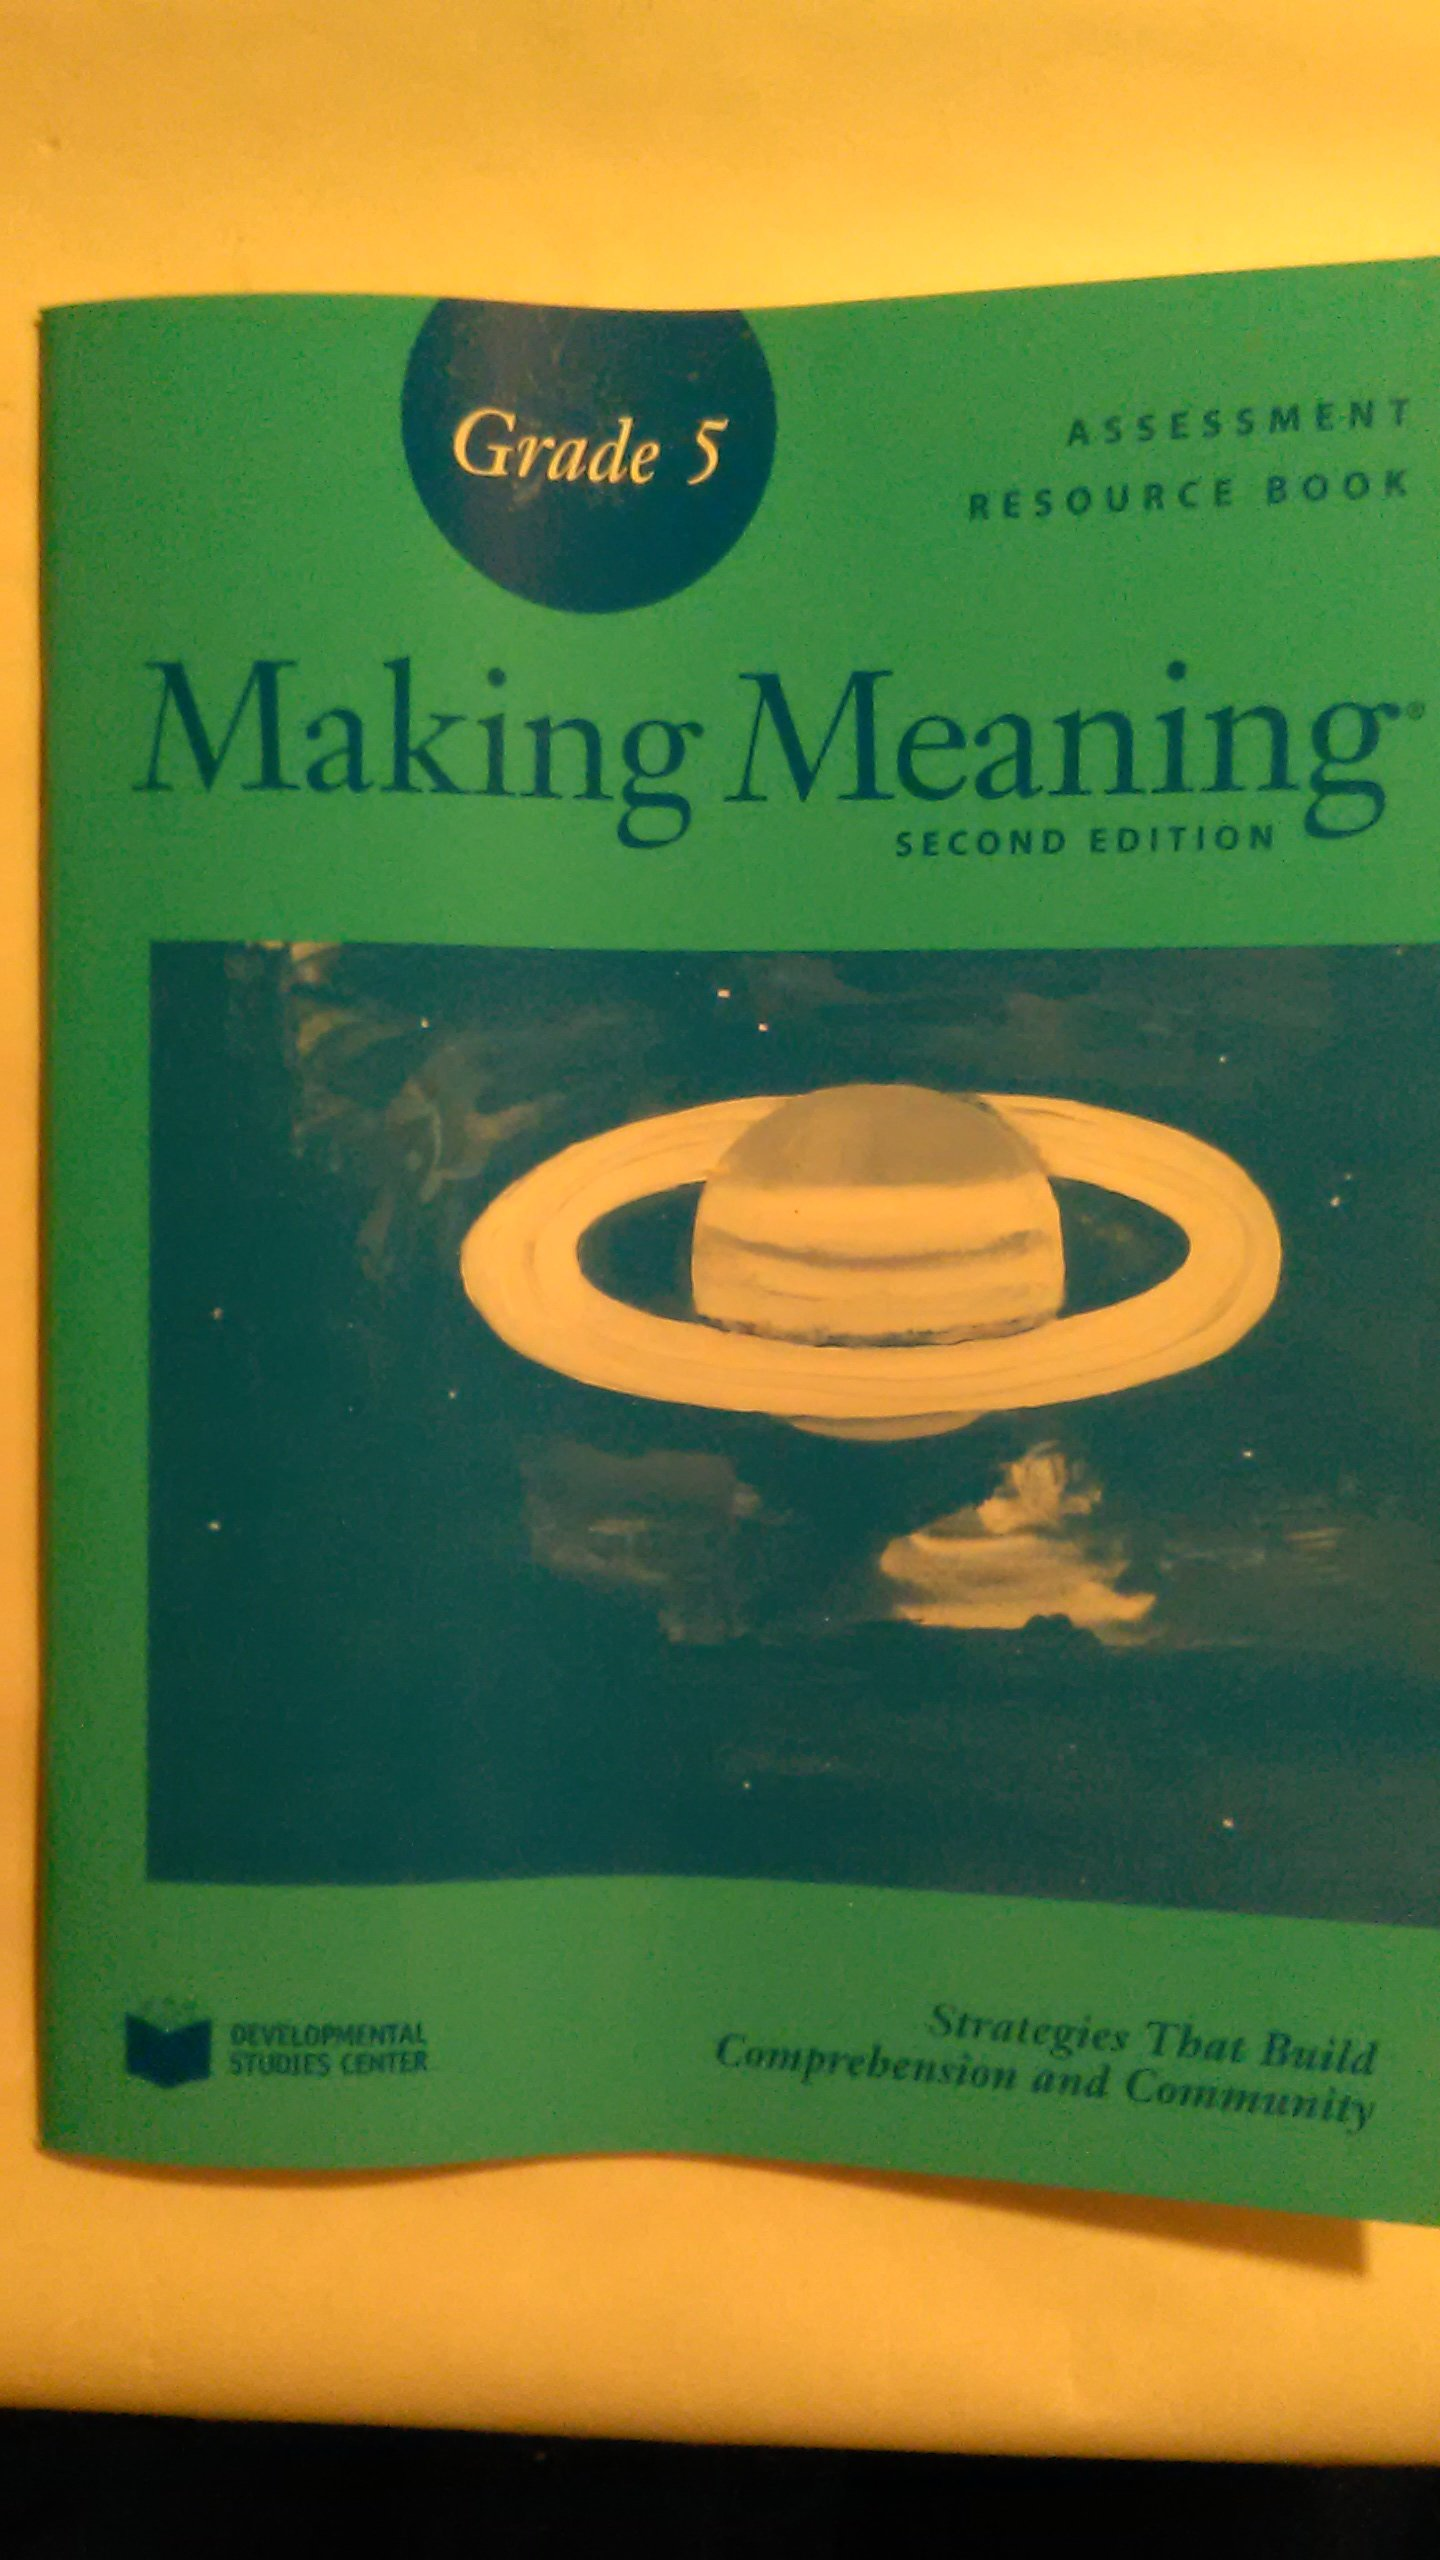 Download Making Meaning 5 Assessment Resource Book pdf epub